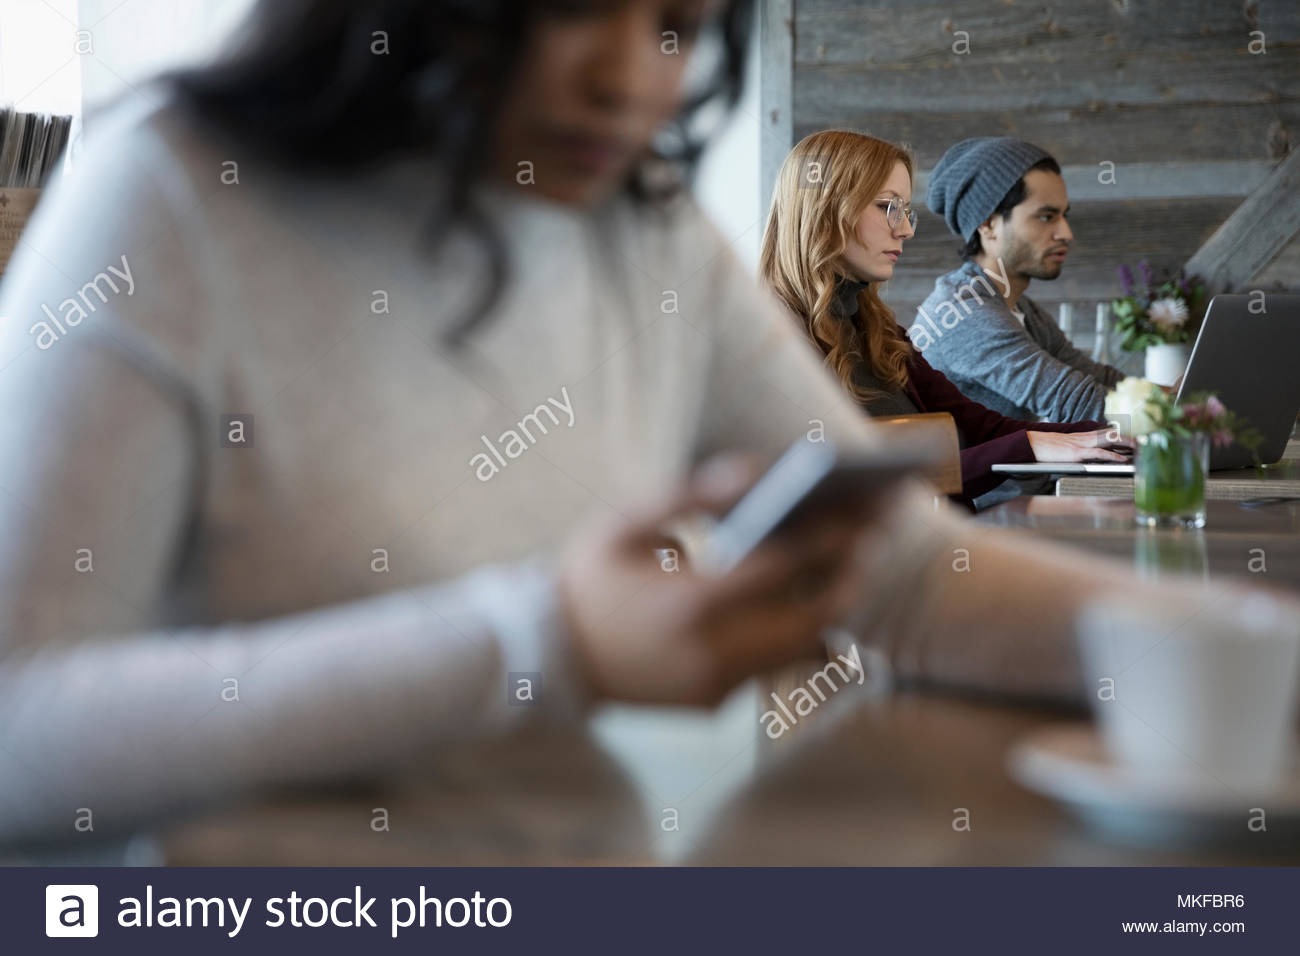 People working in cafe - Stock Image